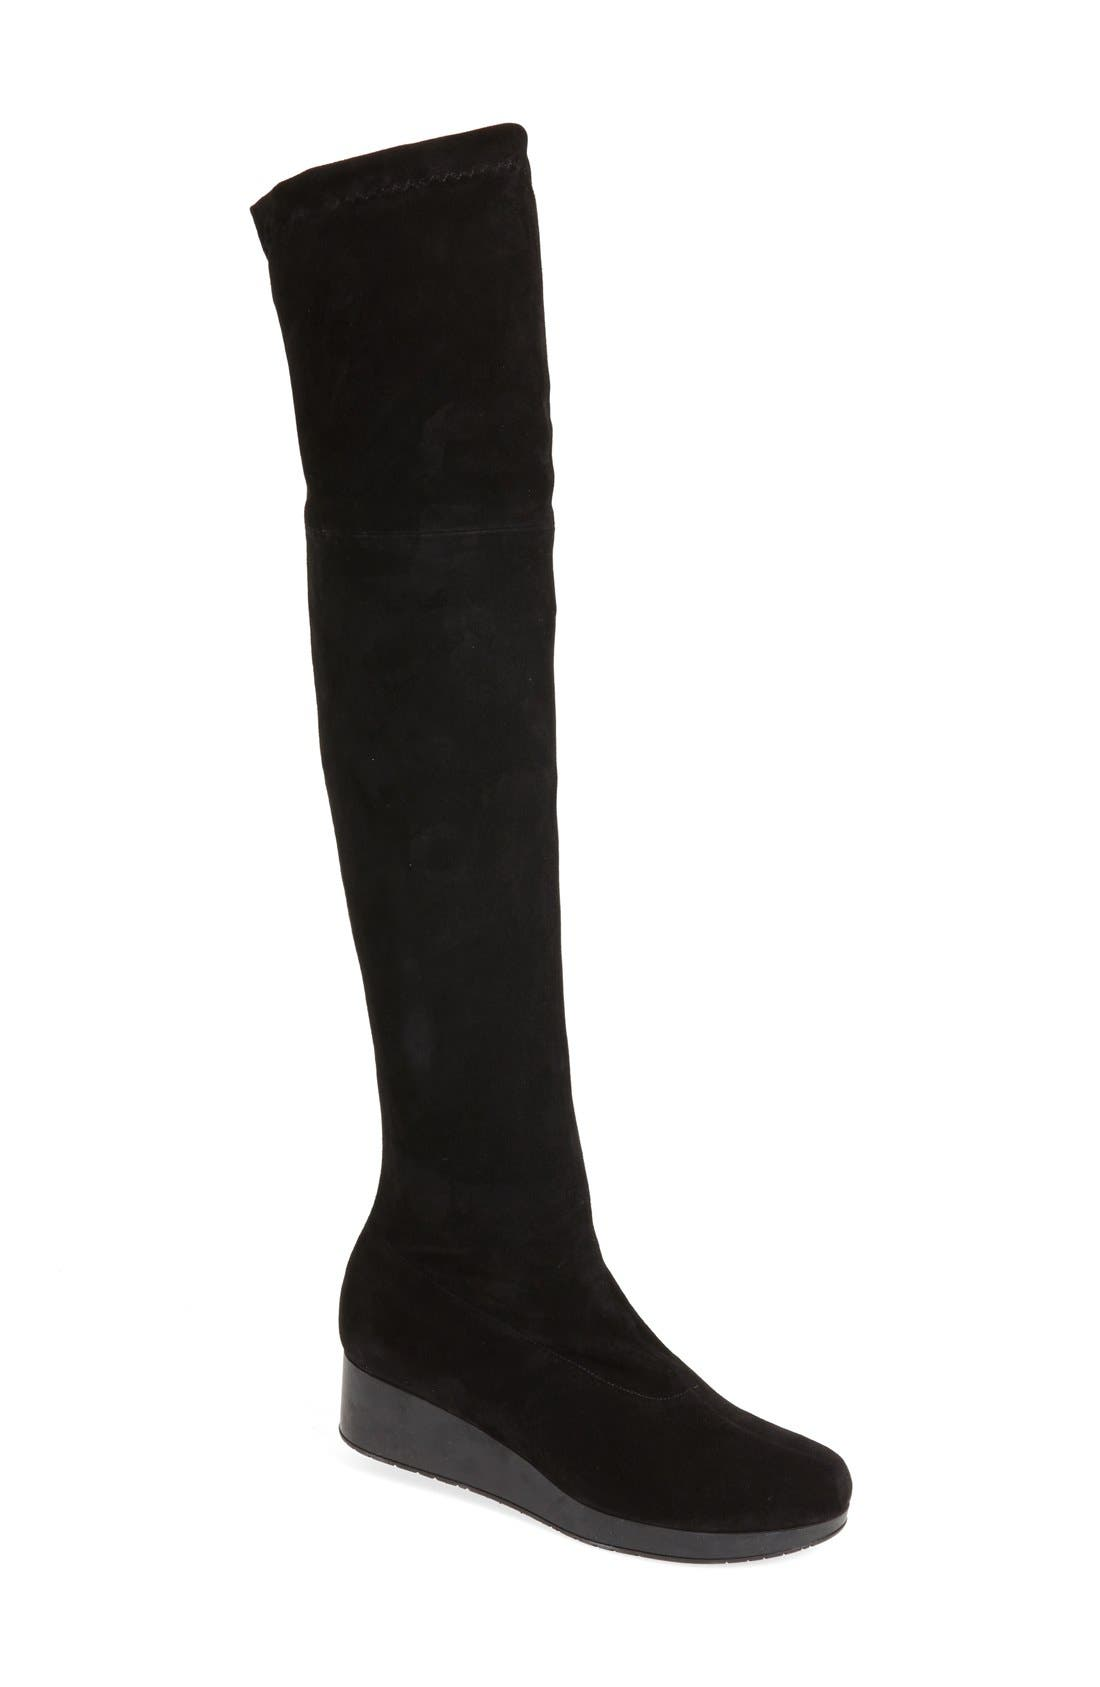 Alternate Image 1 Selected - Robert Clergerie Wedge Over the Knee Boot (Women)